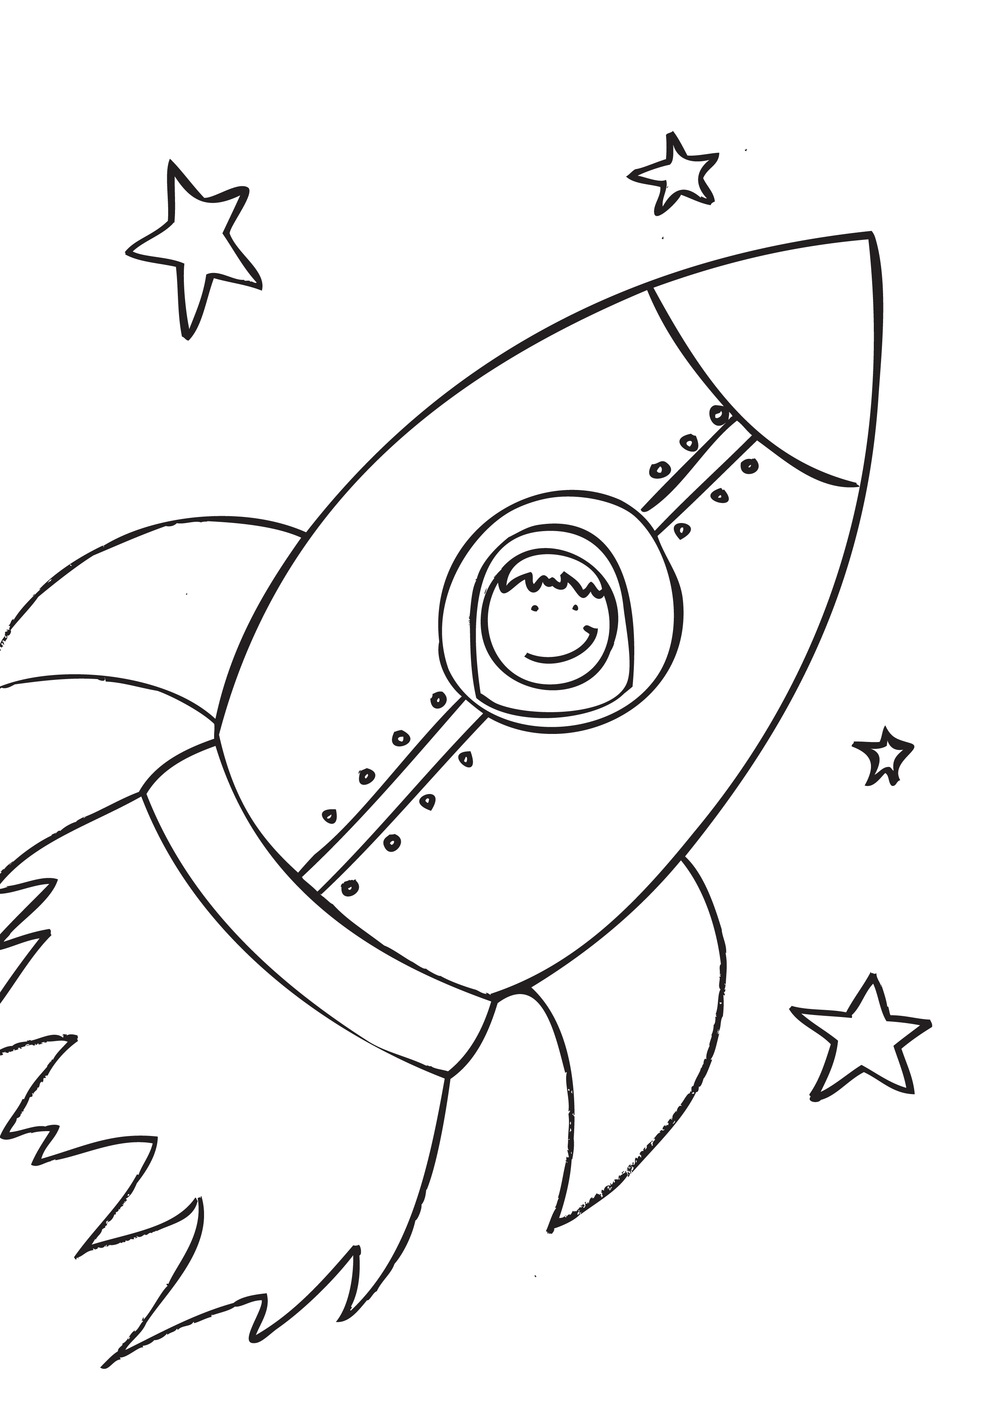 Free Printable Rocket Ship Coloring Pages For Kids Rocket Ship Coloring Page